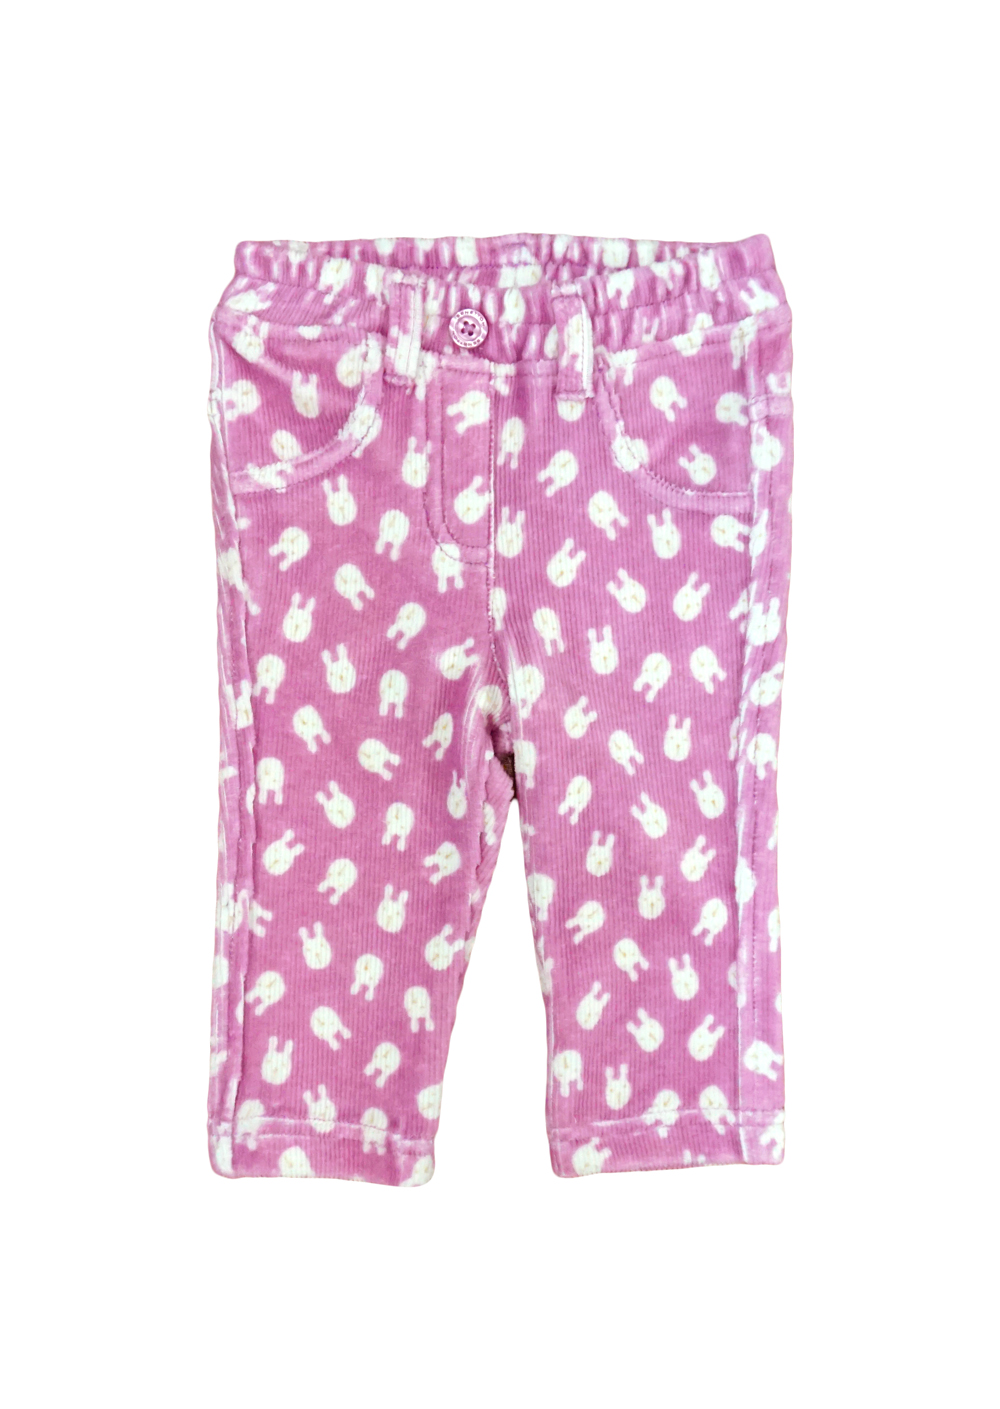 88688ff8e Newborn-Pants 4